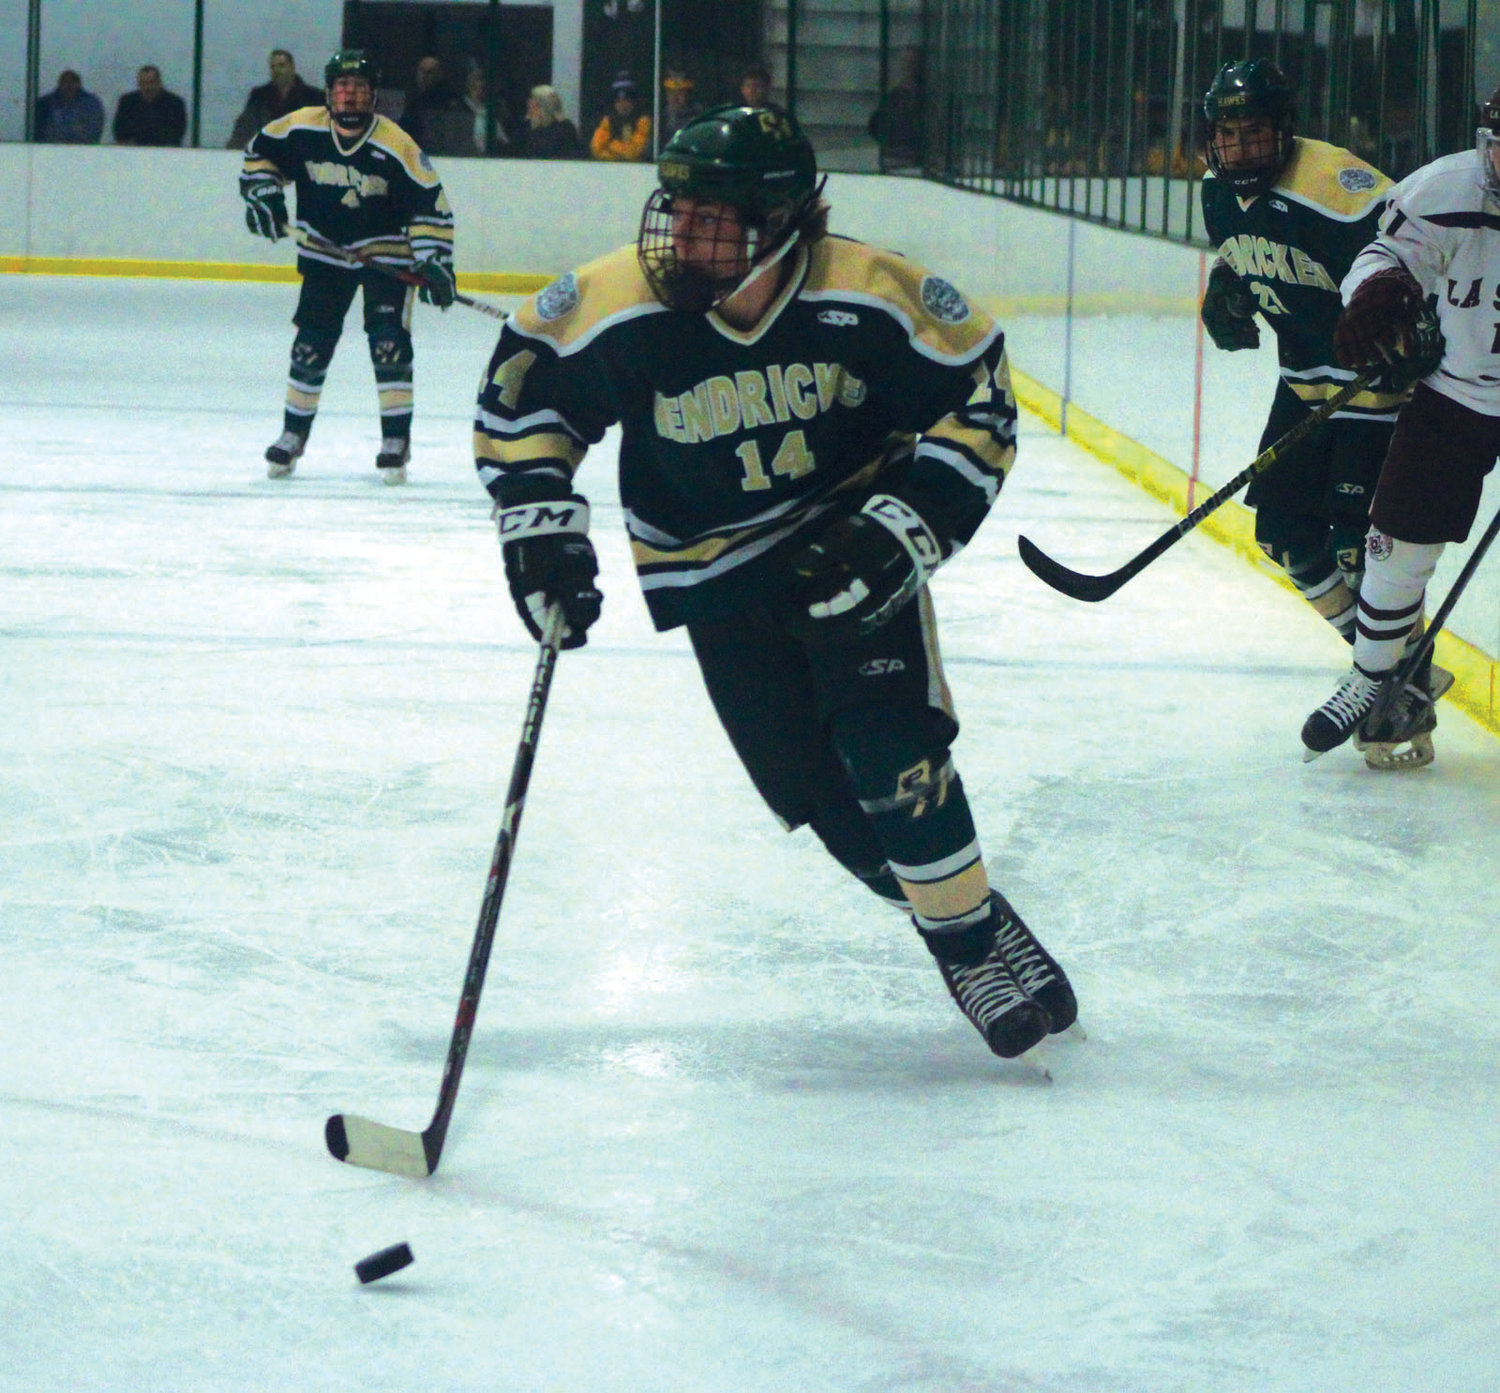 UP THE ICE: Bishop Hendricken's Jacob Tivey takes the puck up the ice.